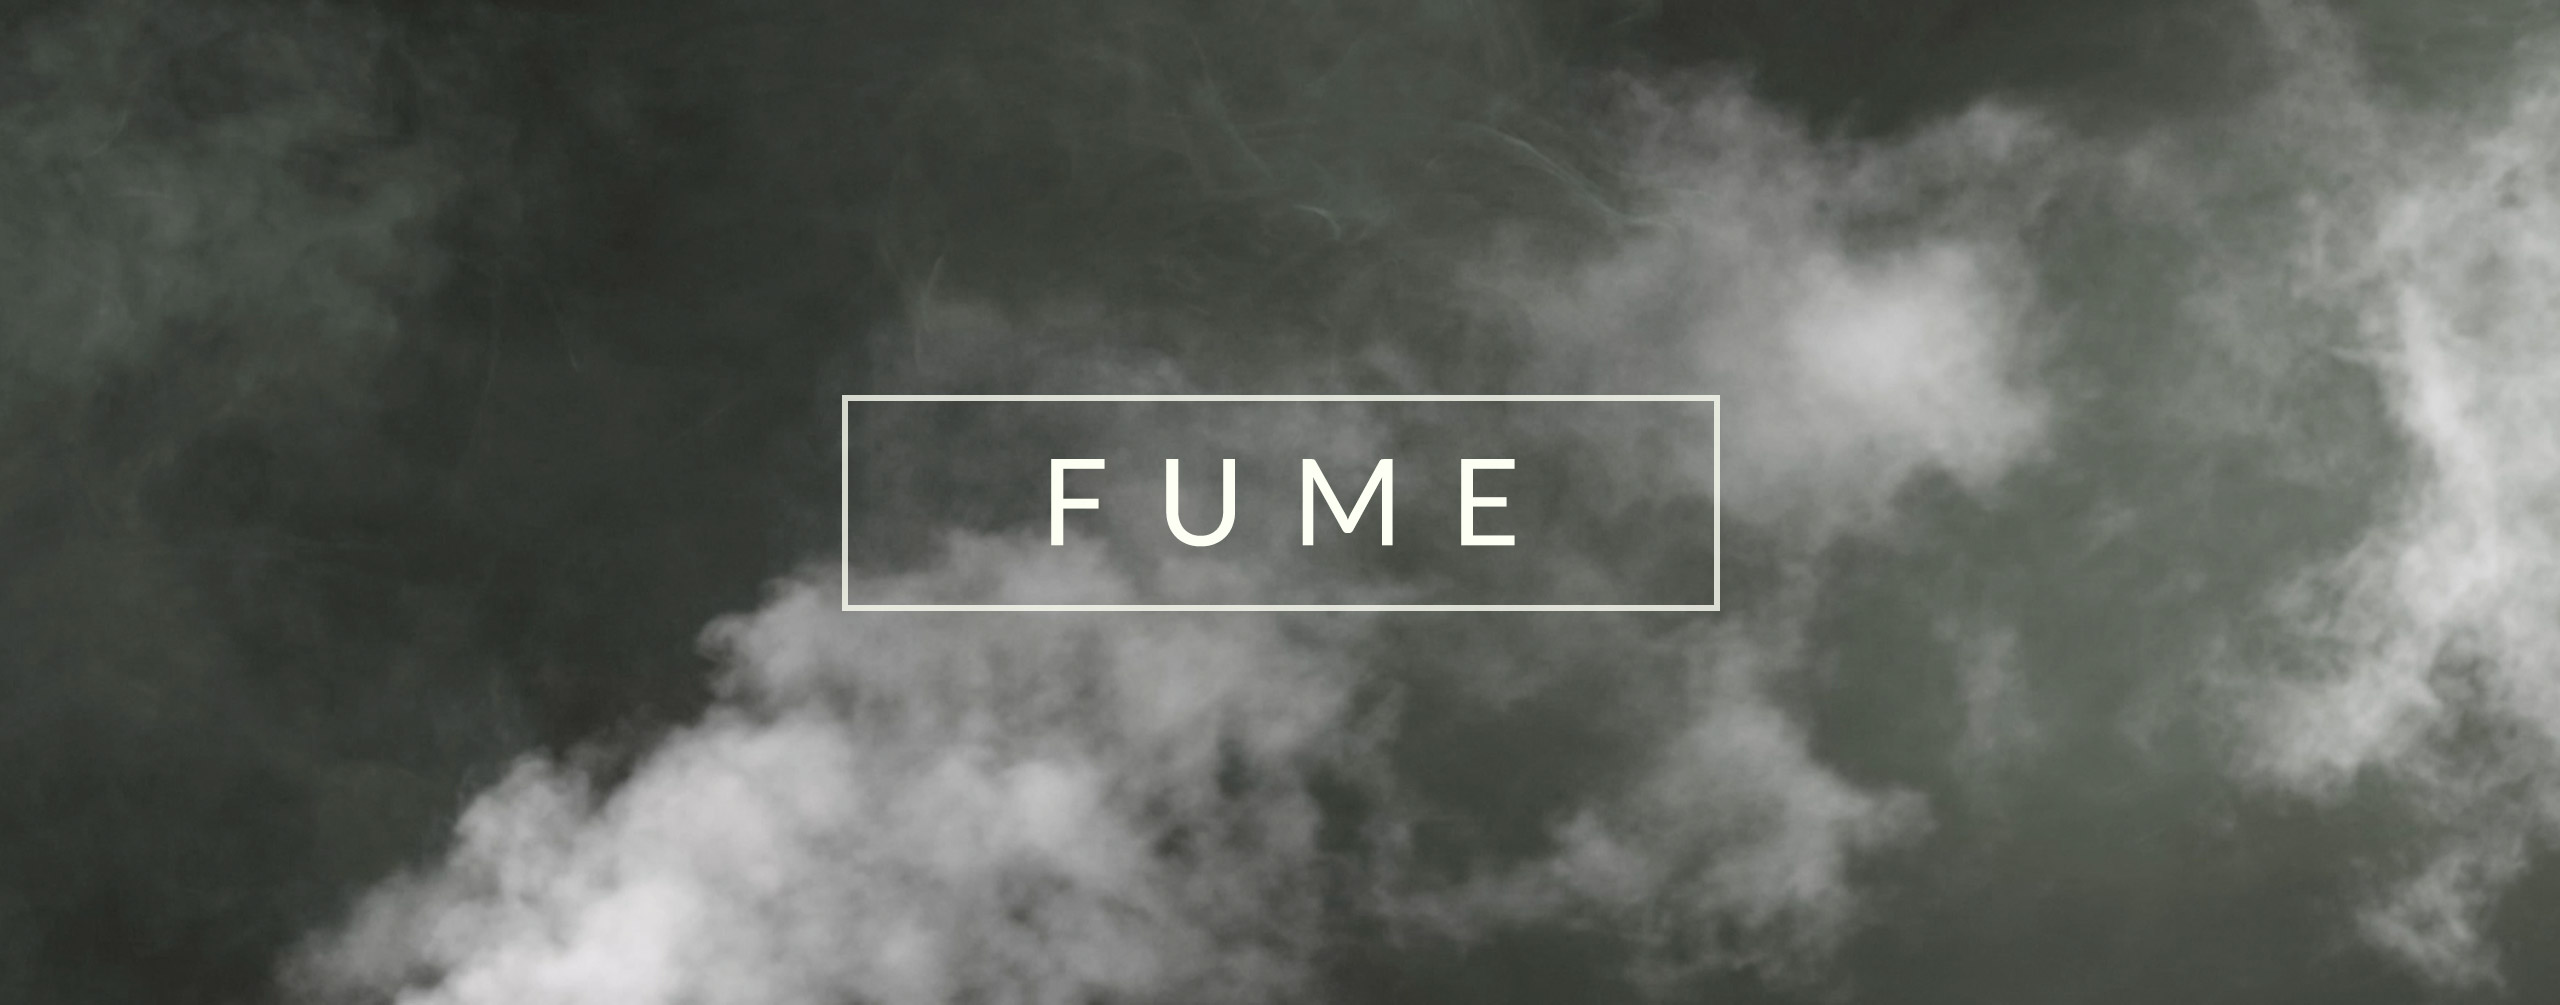 Fume - Smoke Video Effects